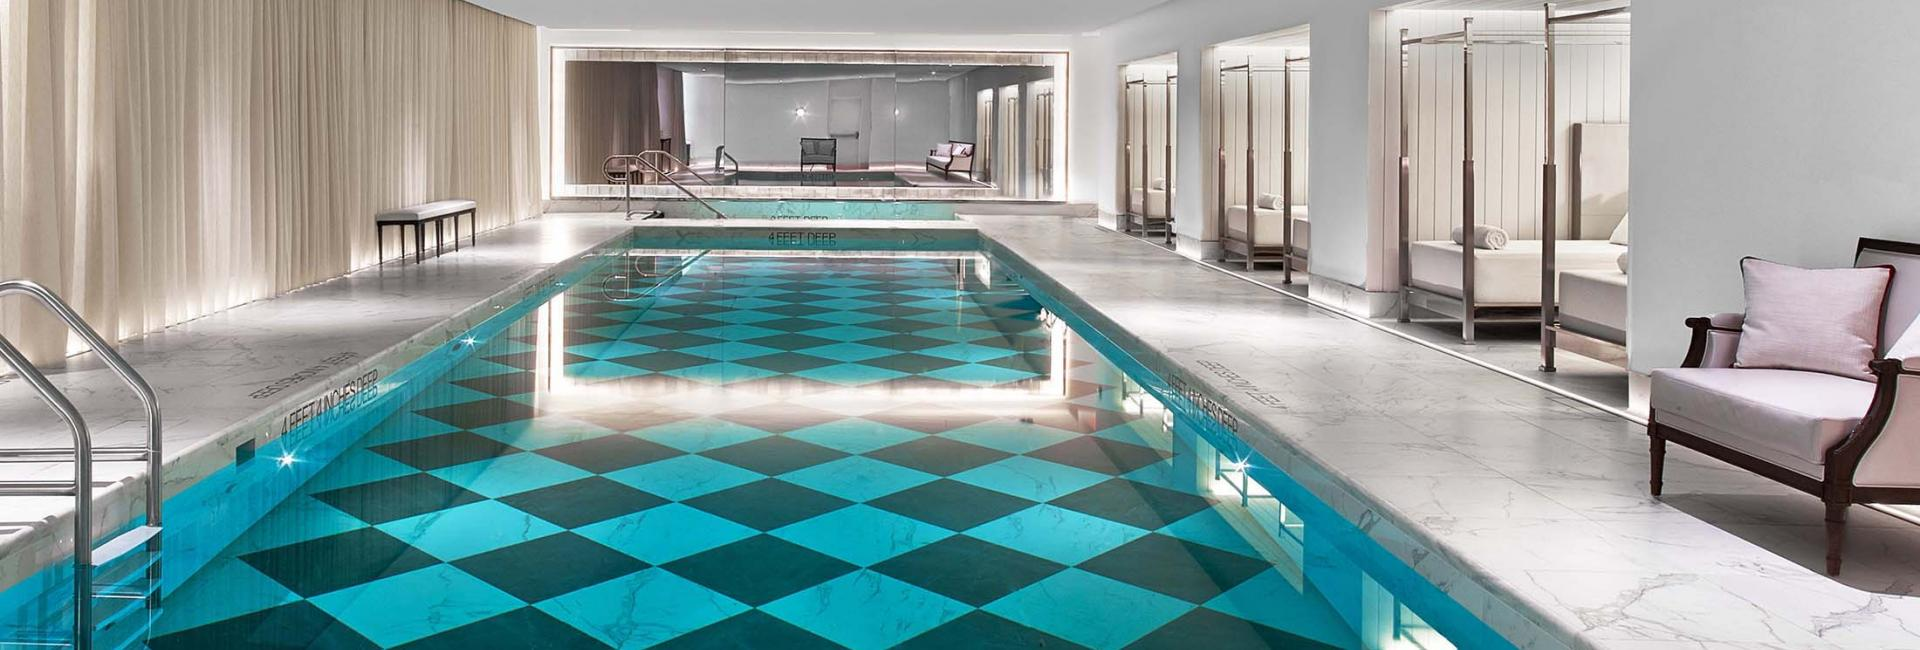 The interior swimming pool at Baccarat Hotel